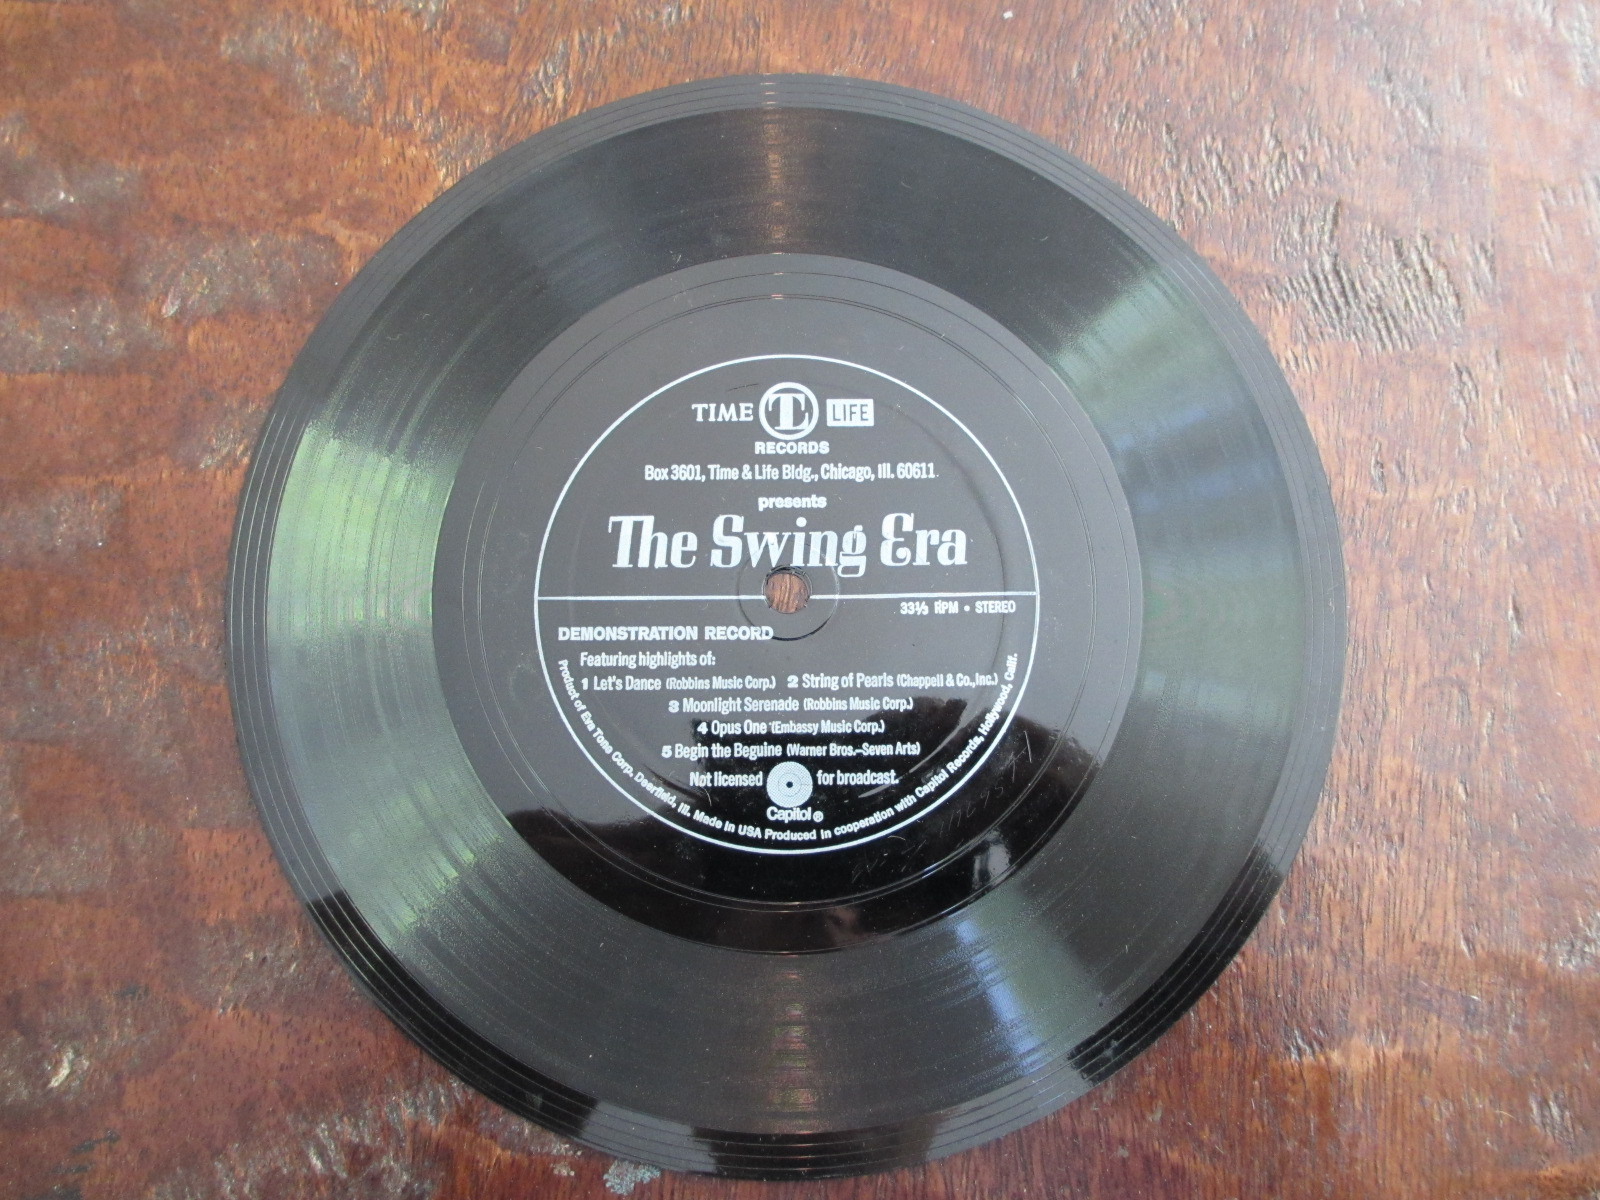 Details about Various Artists The Swing Era Time Life Capitol Records Vinyl  Record 33 1/3 RPM